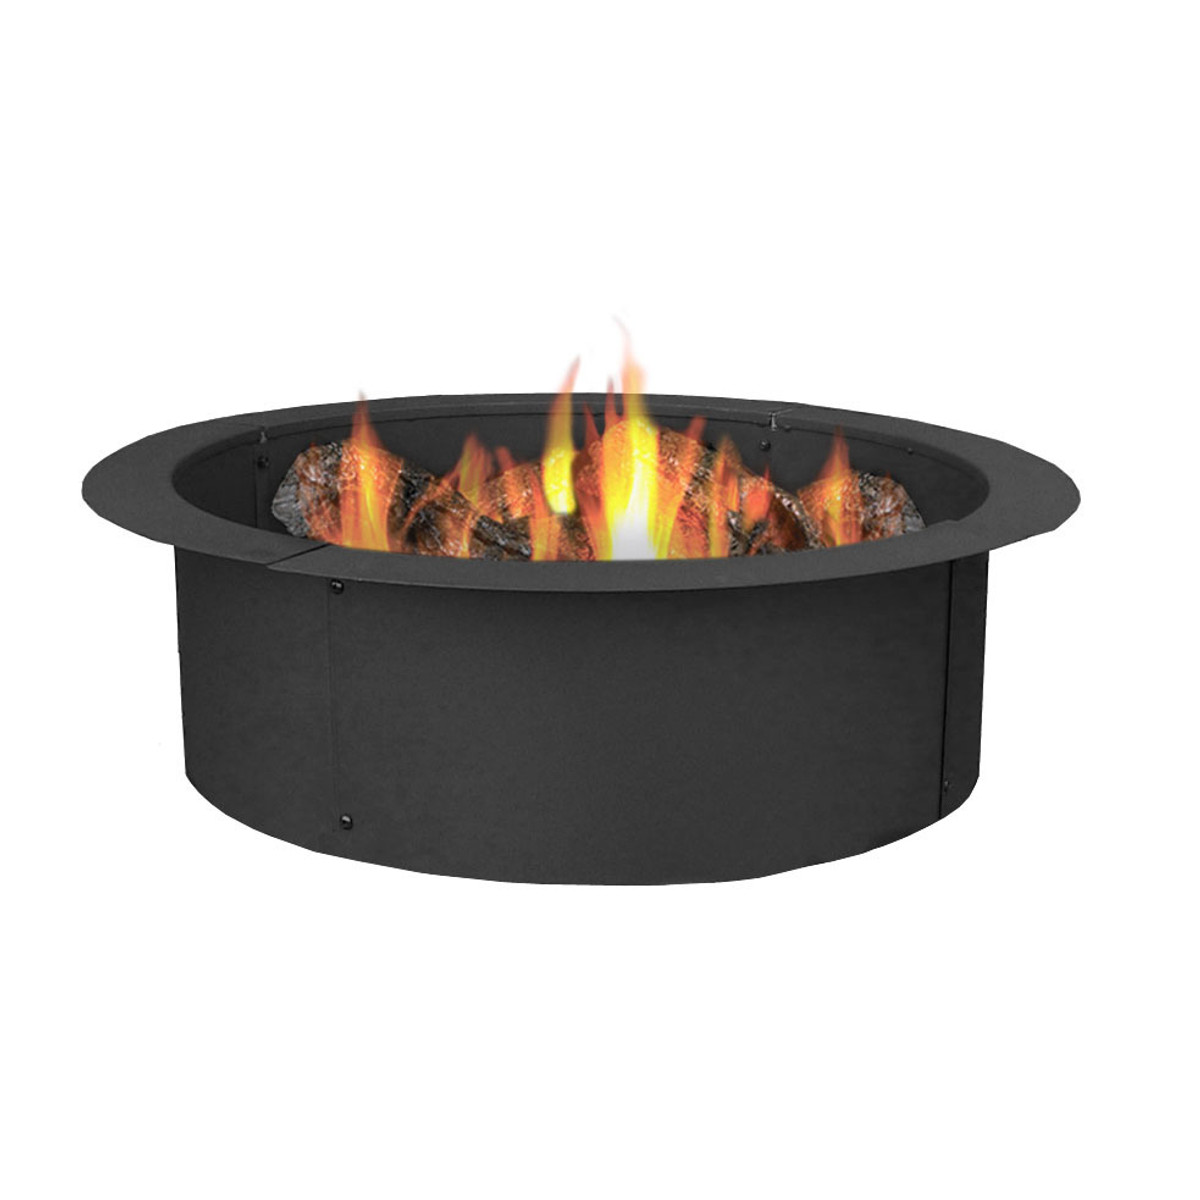 Sunnydaze durable steel fire pit ring liner diy fire pit rim above or in ground